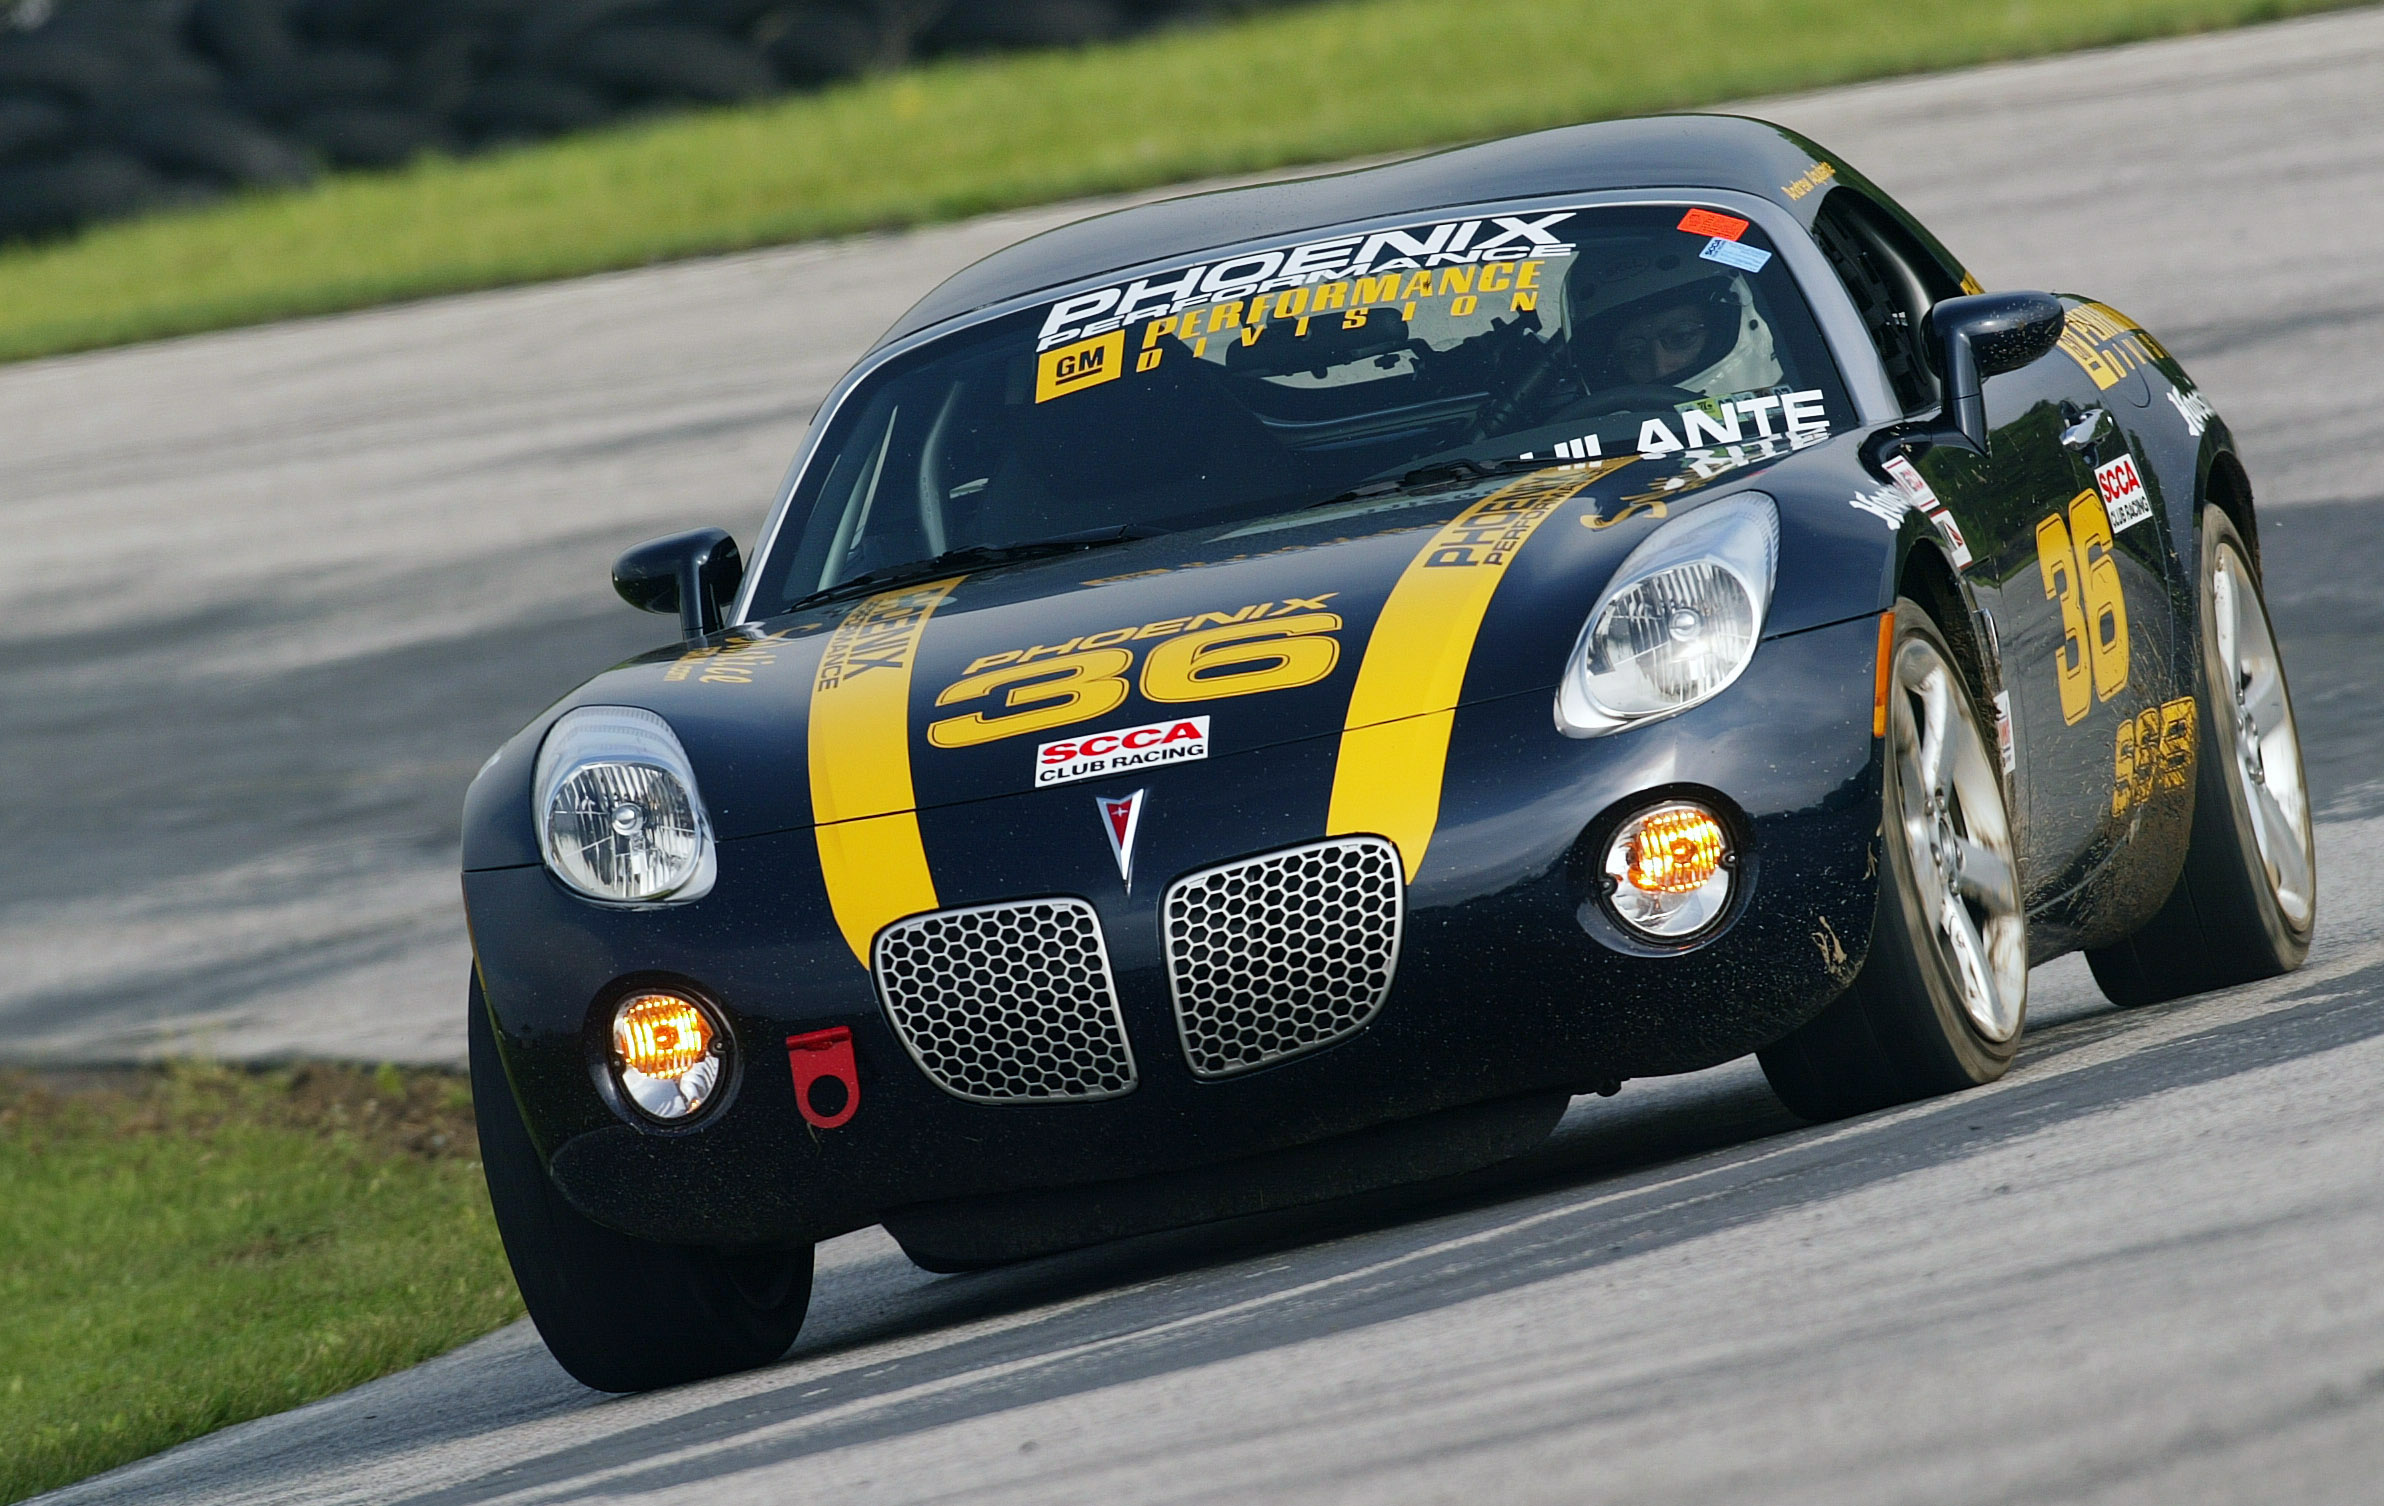 Pontiac solstice wins again in scca racing at lime rock autospies auto news